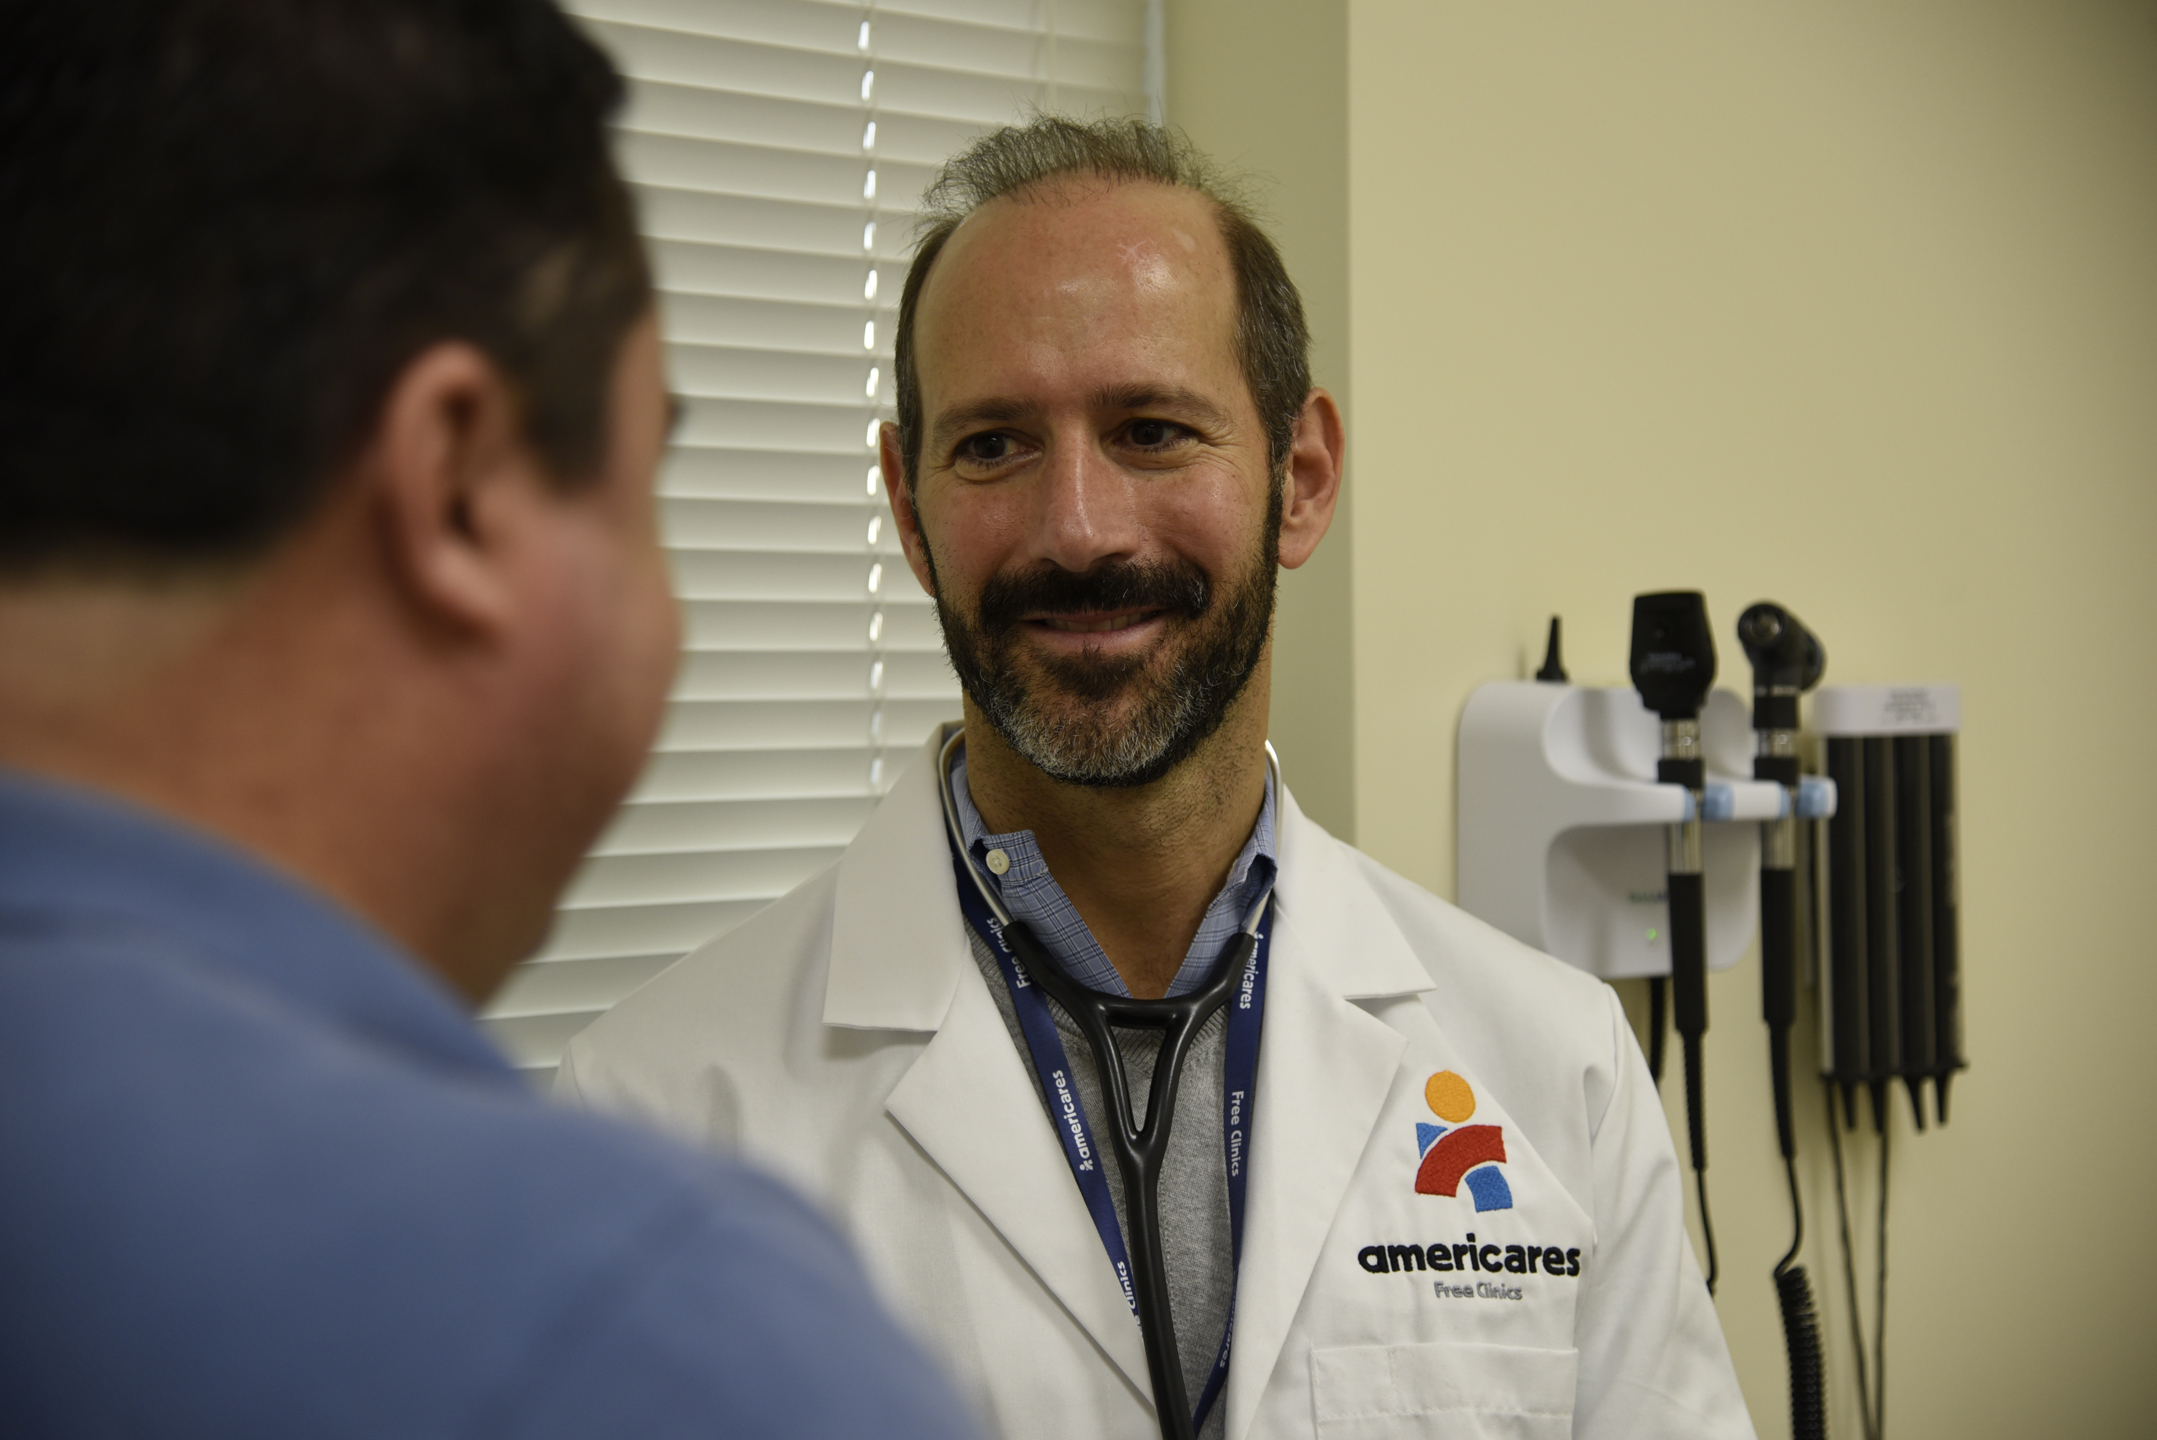 With demand already up, free clinics anticipate more need